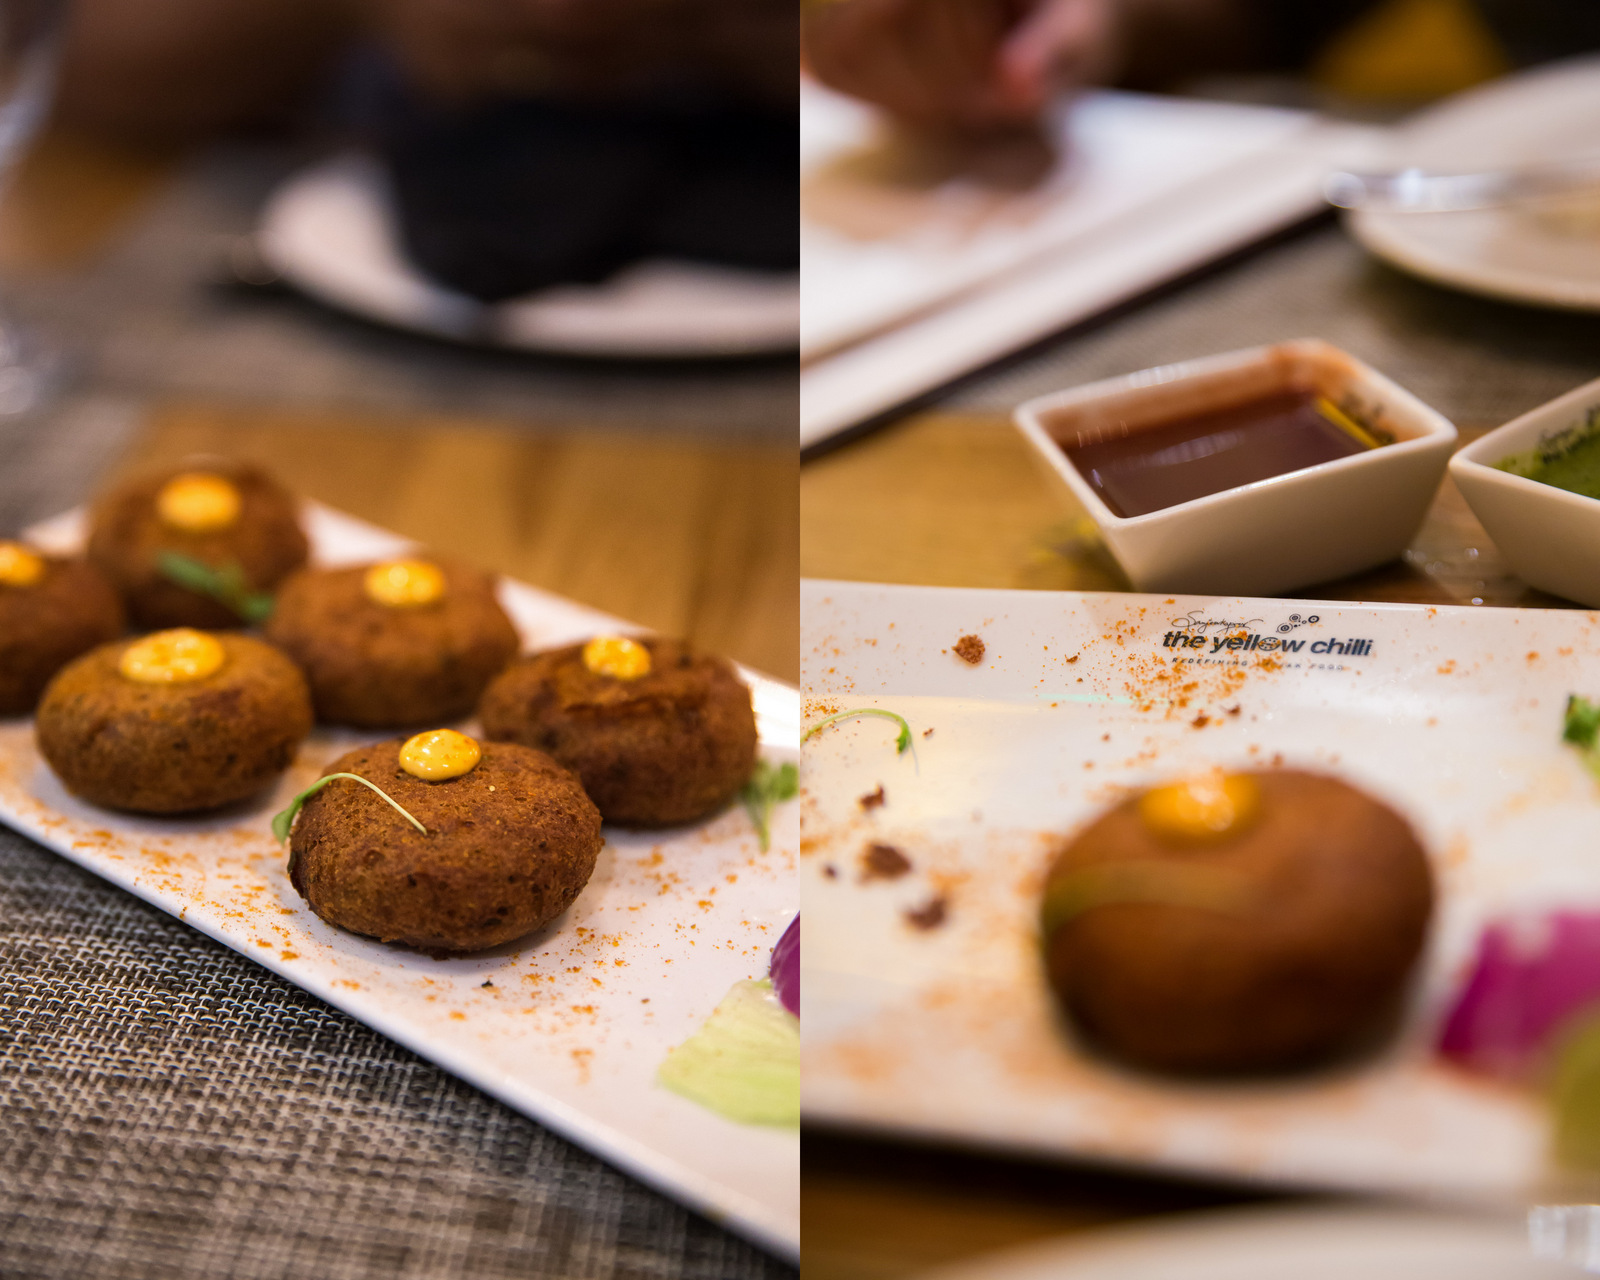 #sanjeev kapoor #restaurant review #indian food #santa clara #bay area restaurant #foodblog #foodie #food photographer #celebritychef #siliconvalley #indian food restaurant #food blogger #masterchef #yellow chilli restaurant bay area #yellow chilli restaurant santa clara